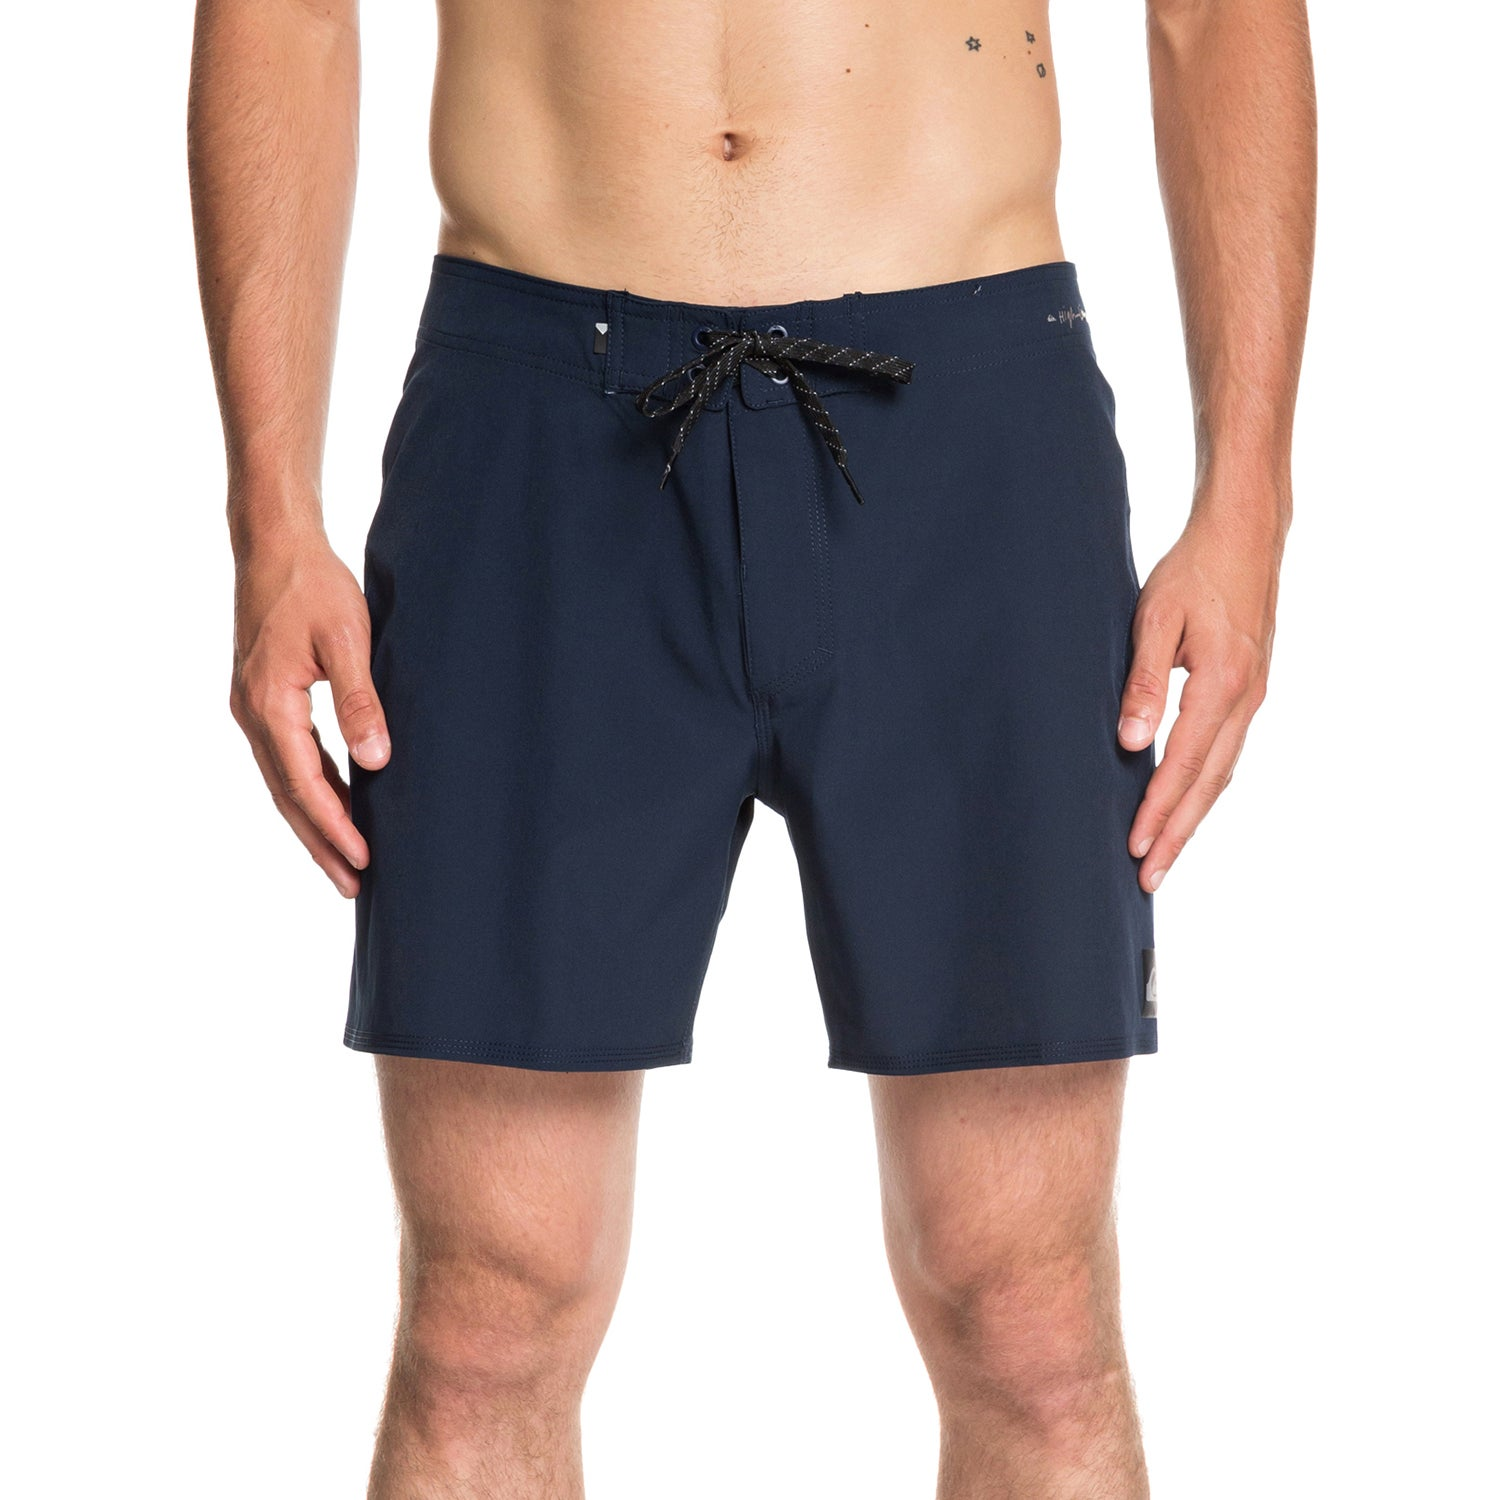 b8d6c32c01 Quiksilver Highline Kaimana 16in Board Shorts at Extremepie.com